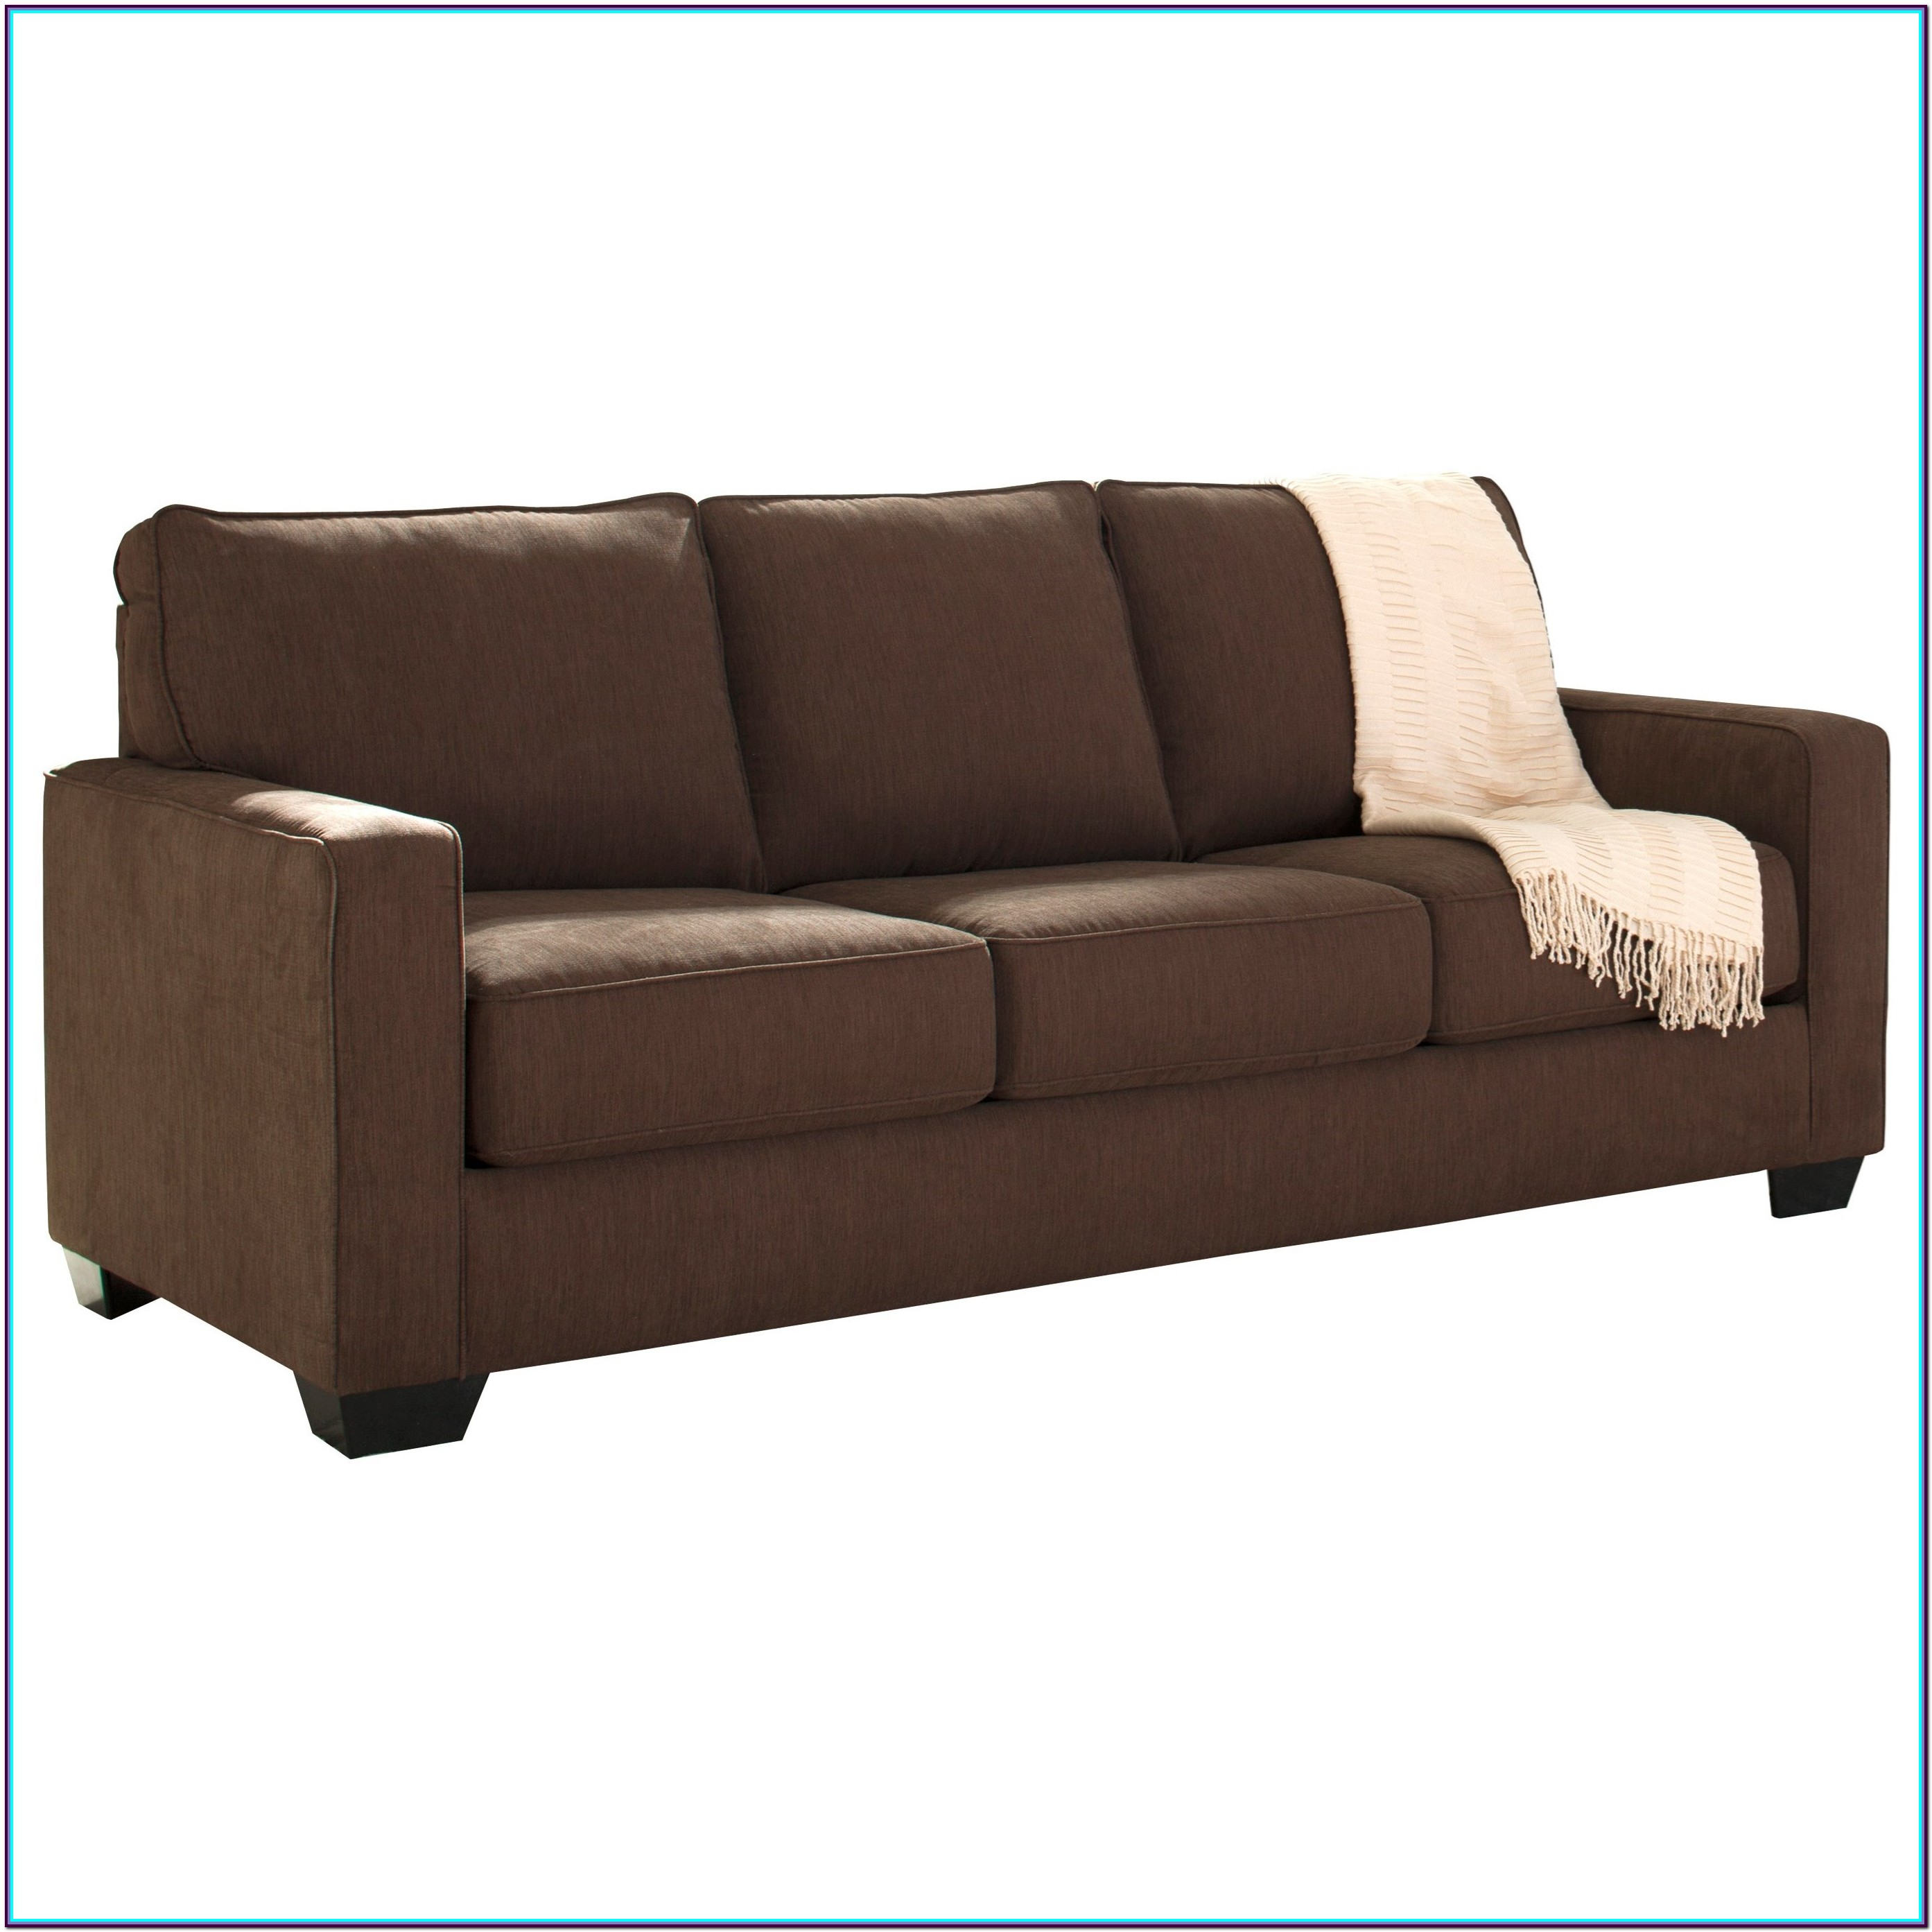 Ashley Furniture Sofa Beds Queen Size